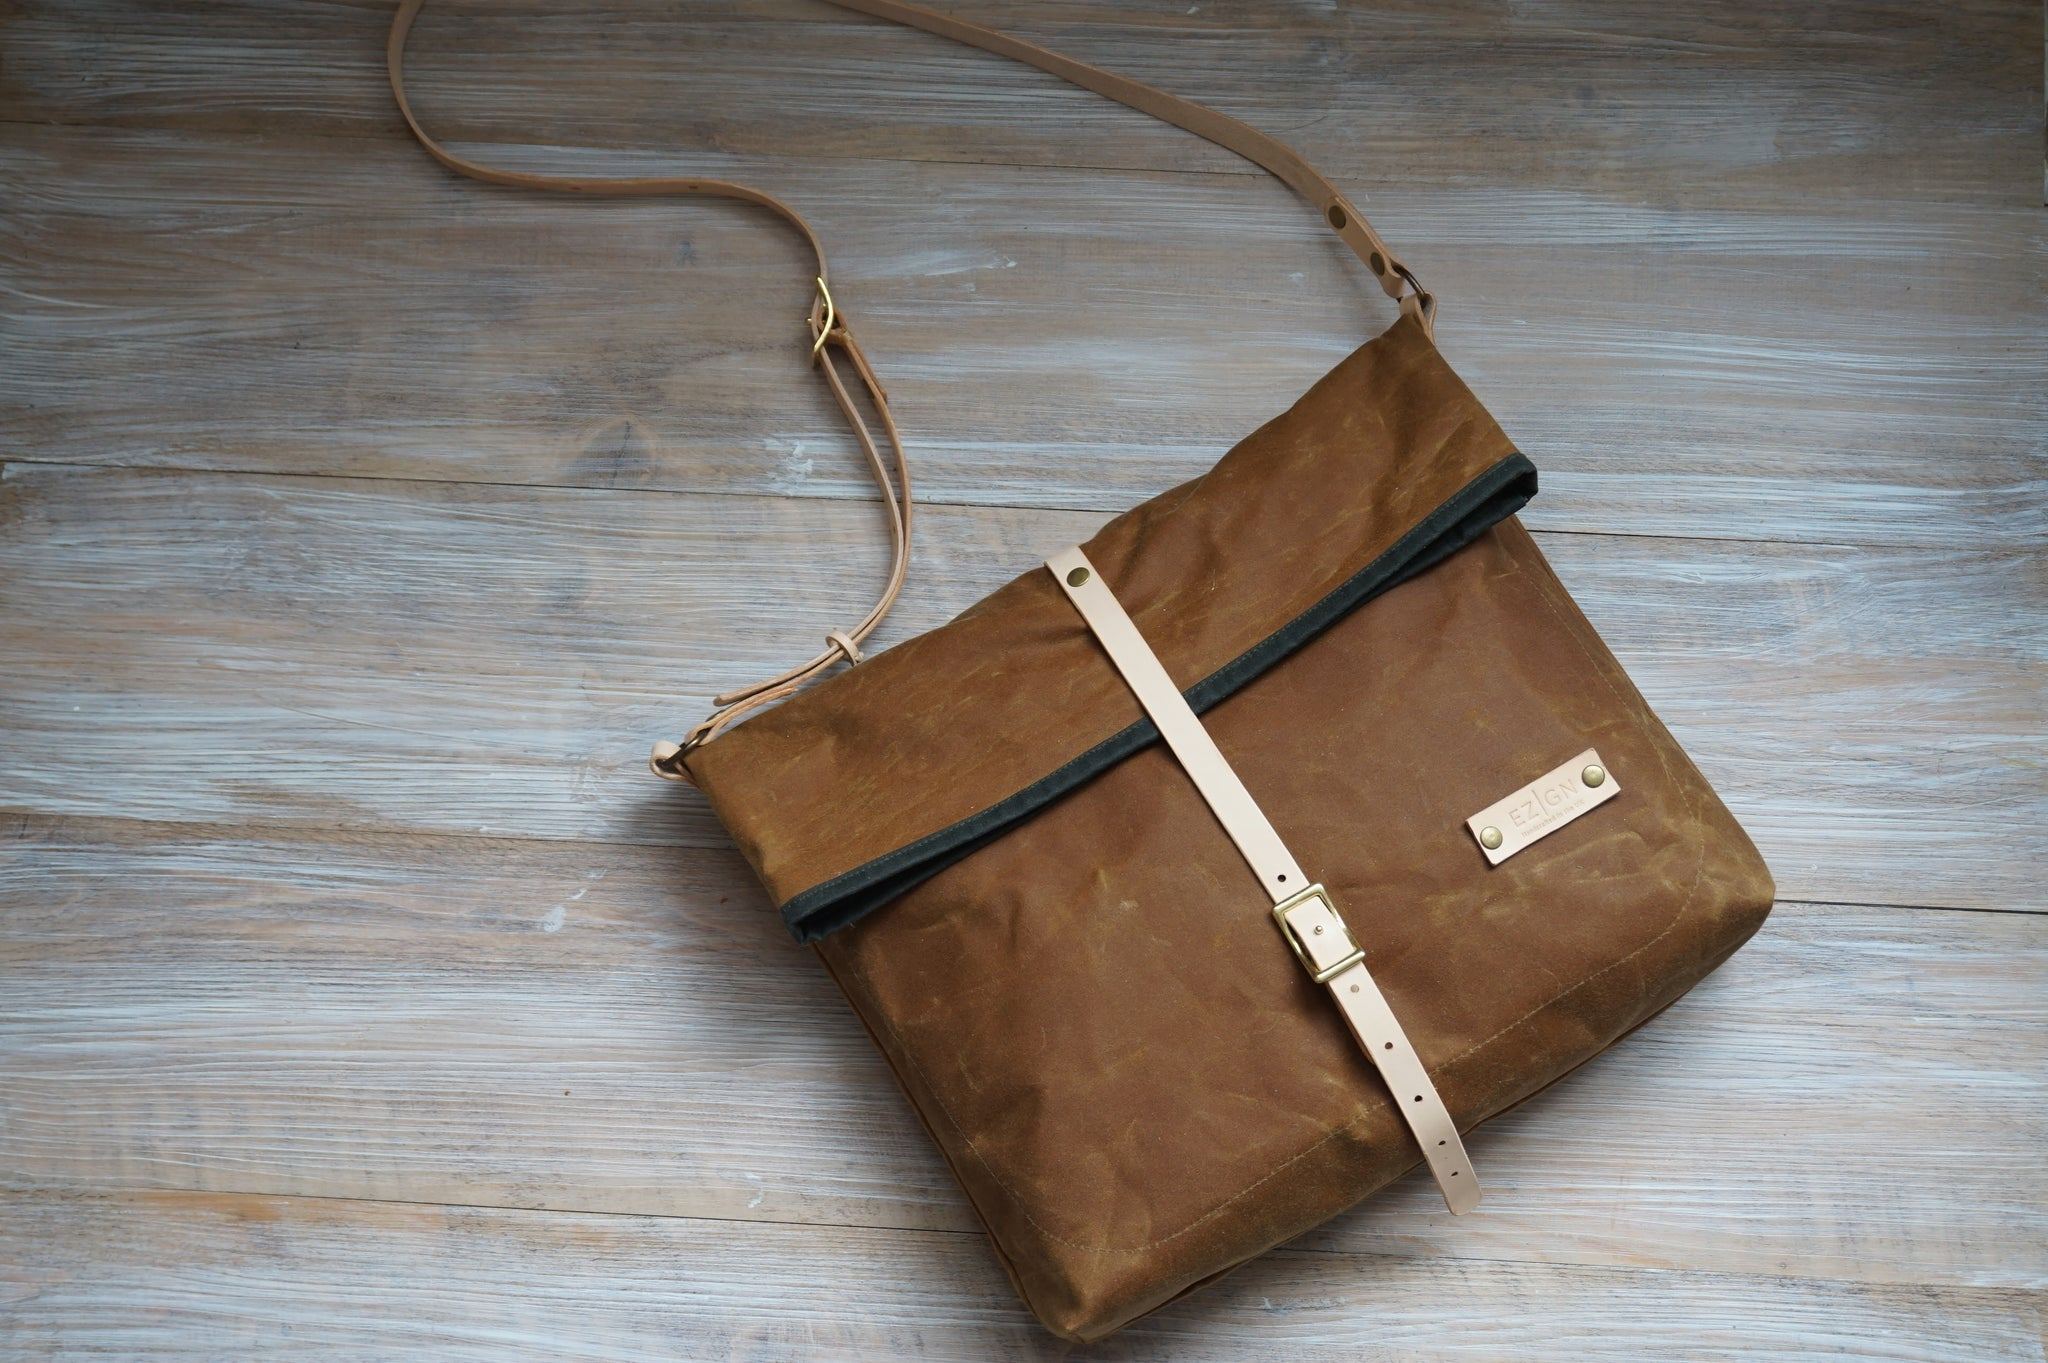 e48c6730ea5e Load image into Gallery viewer, Gold Wax Canvas Cross Body Bag - Everyday  Bag style ...